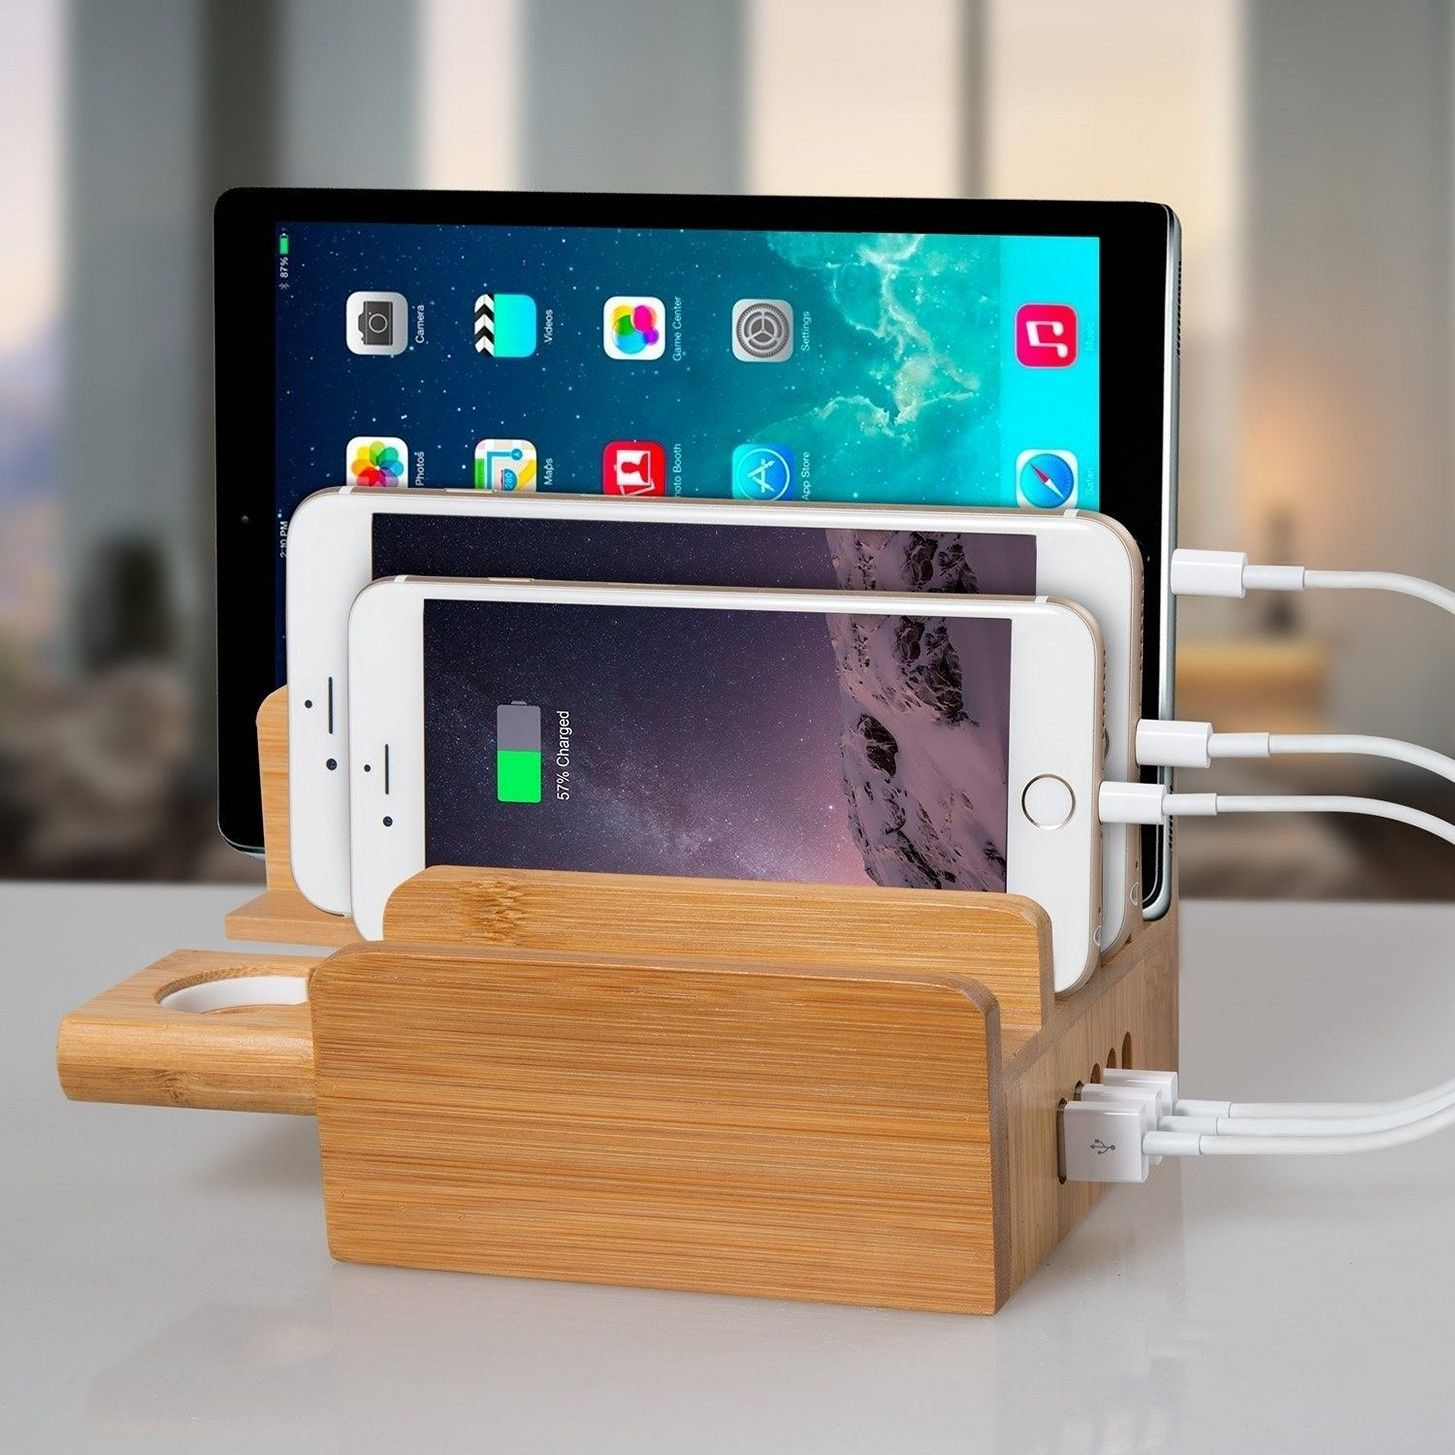 Newest Upgraded Merit Bamboo Usb Charging Station With Le Watch Stand Multi Device Desk Organizer Dock Holder For All Iphones Ipads Nexus